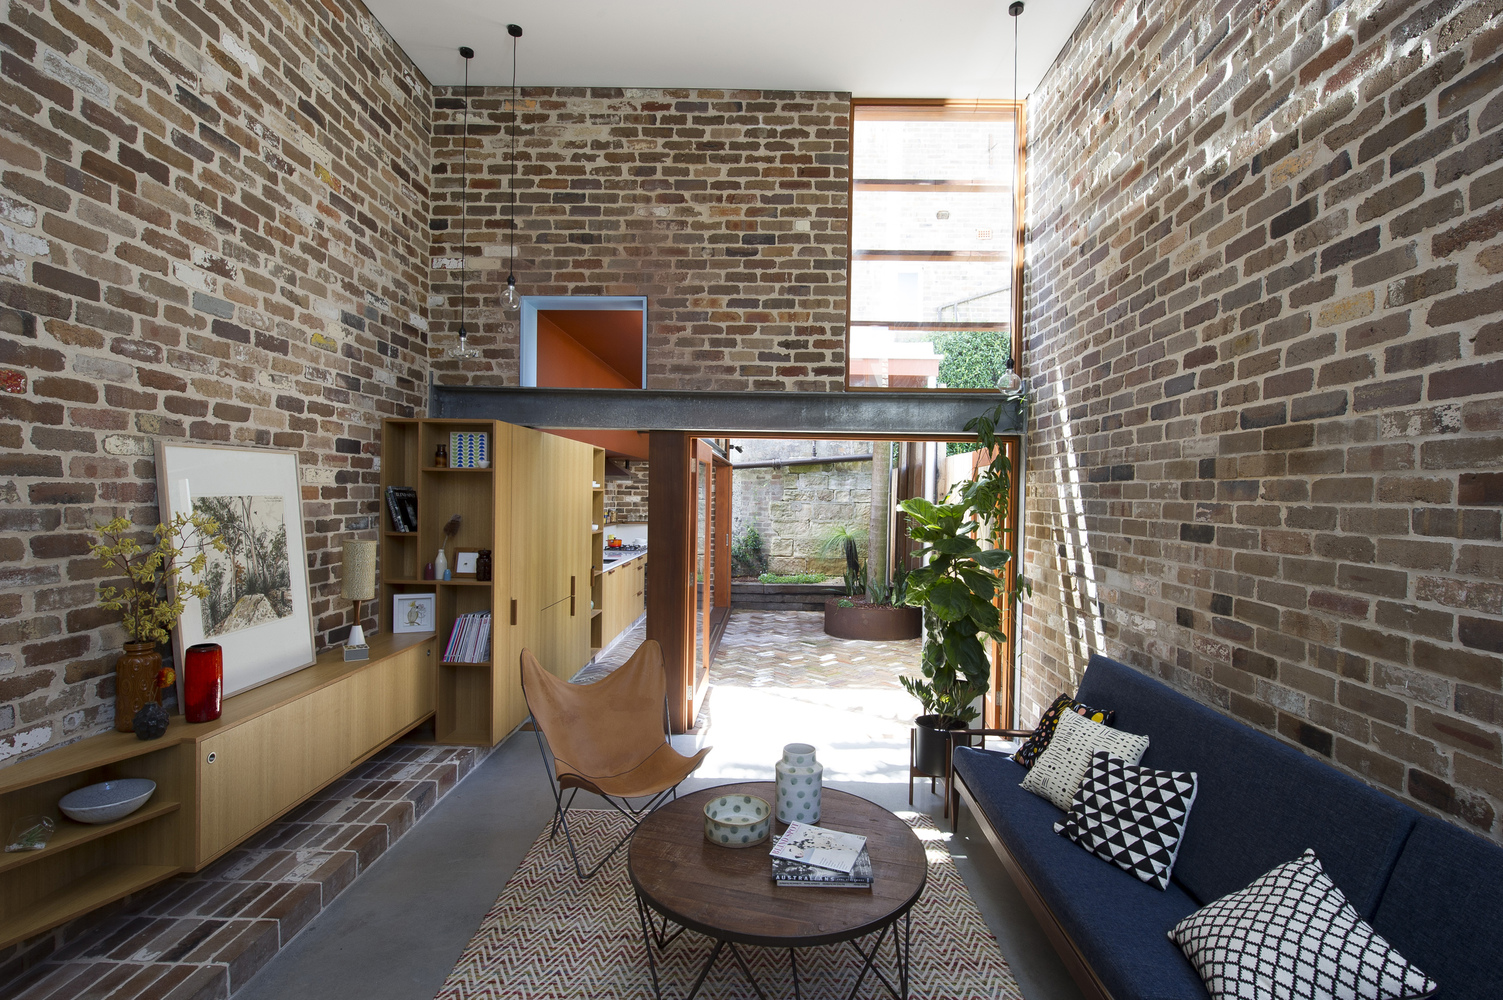 Walter Street Terrace by David Boyle Architects (via Lunchbox Architect)